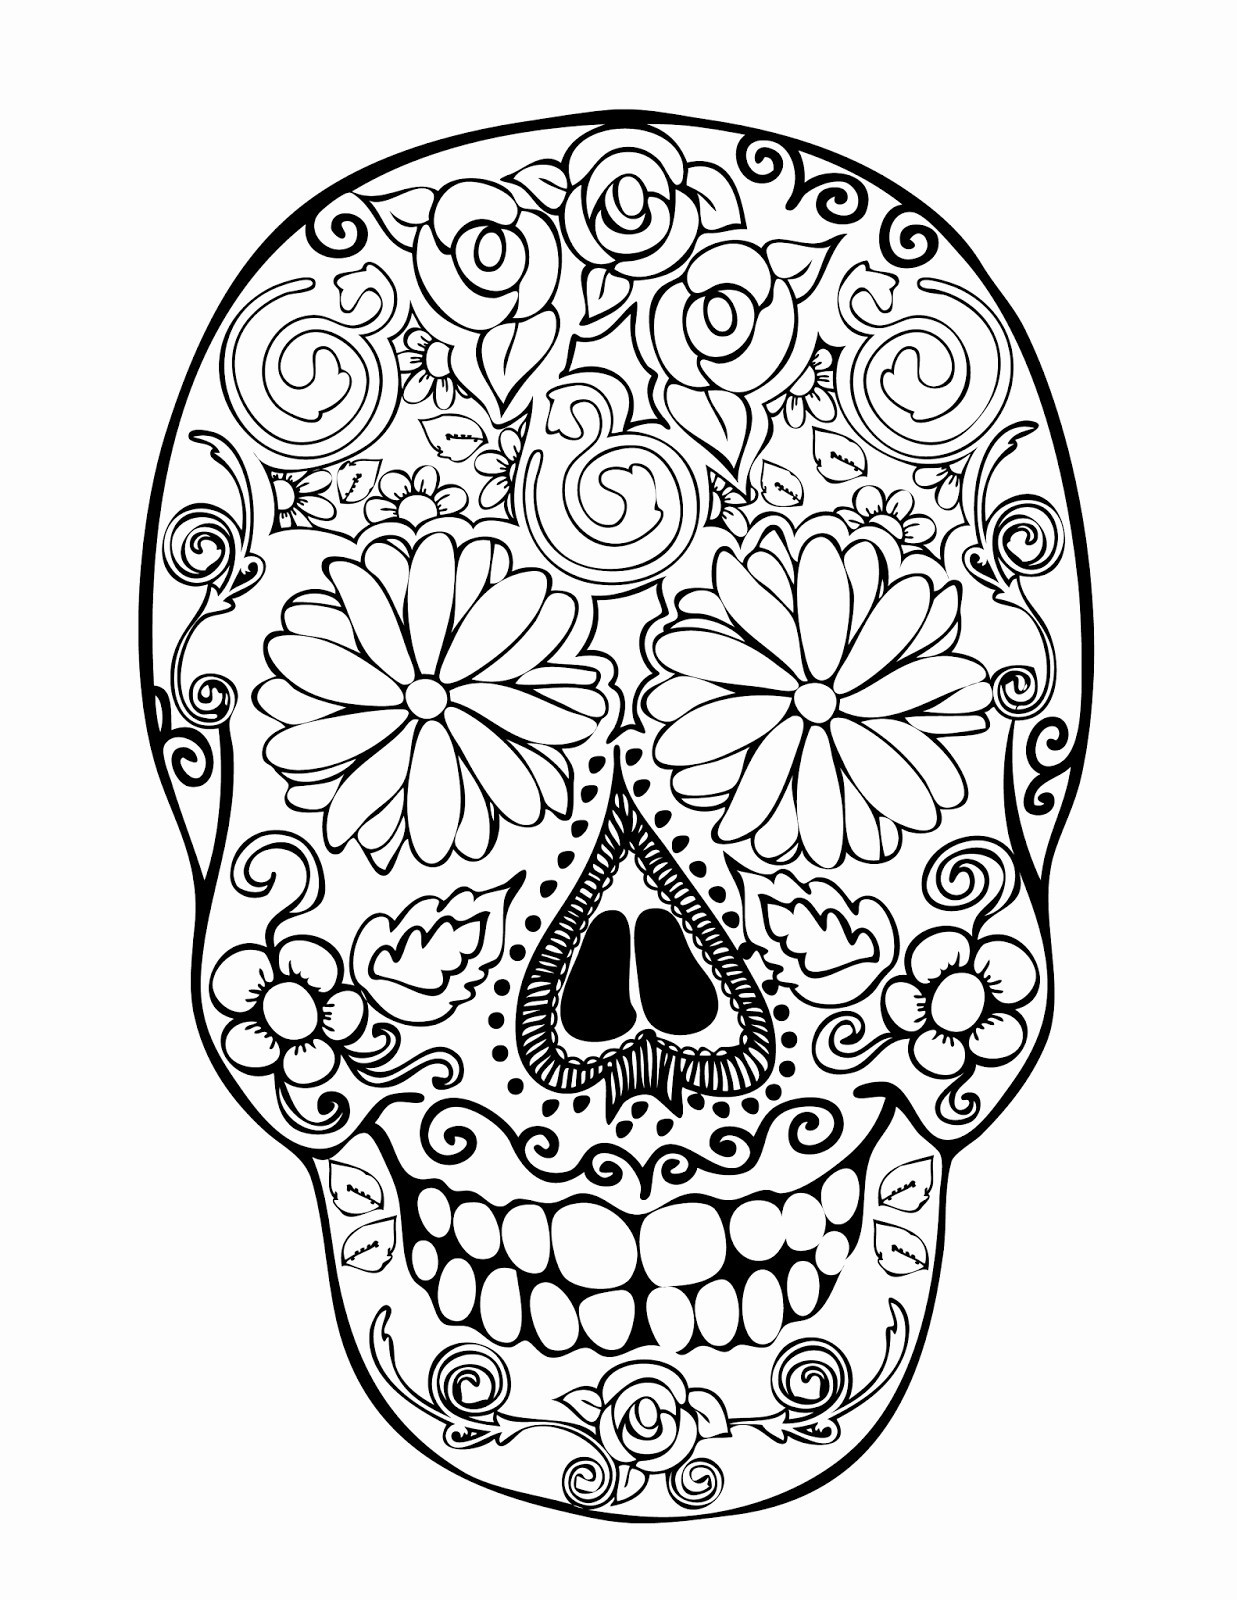 1237x1600 Halloween Coloring Pages Skulls New Sugar Skull Drawings Tumblr